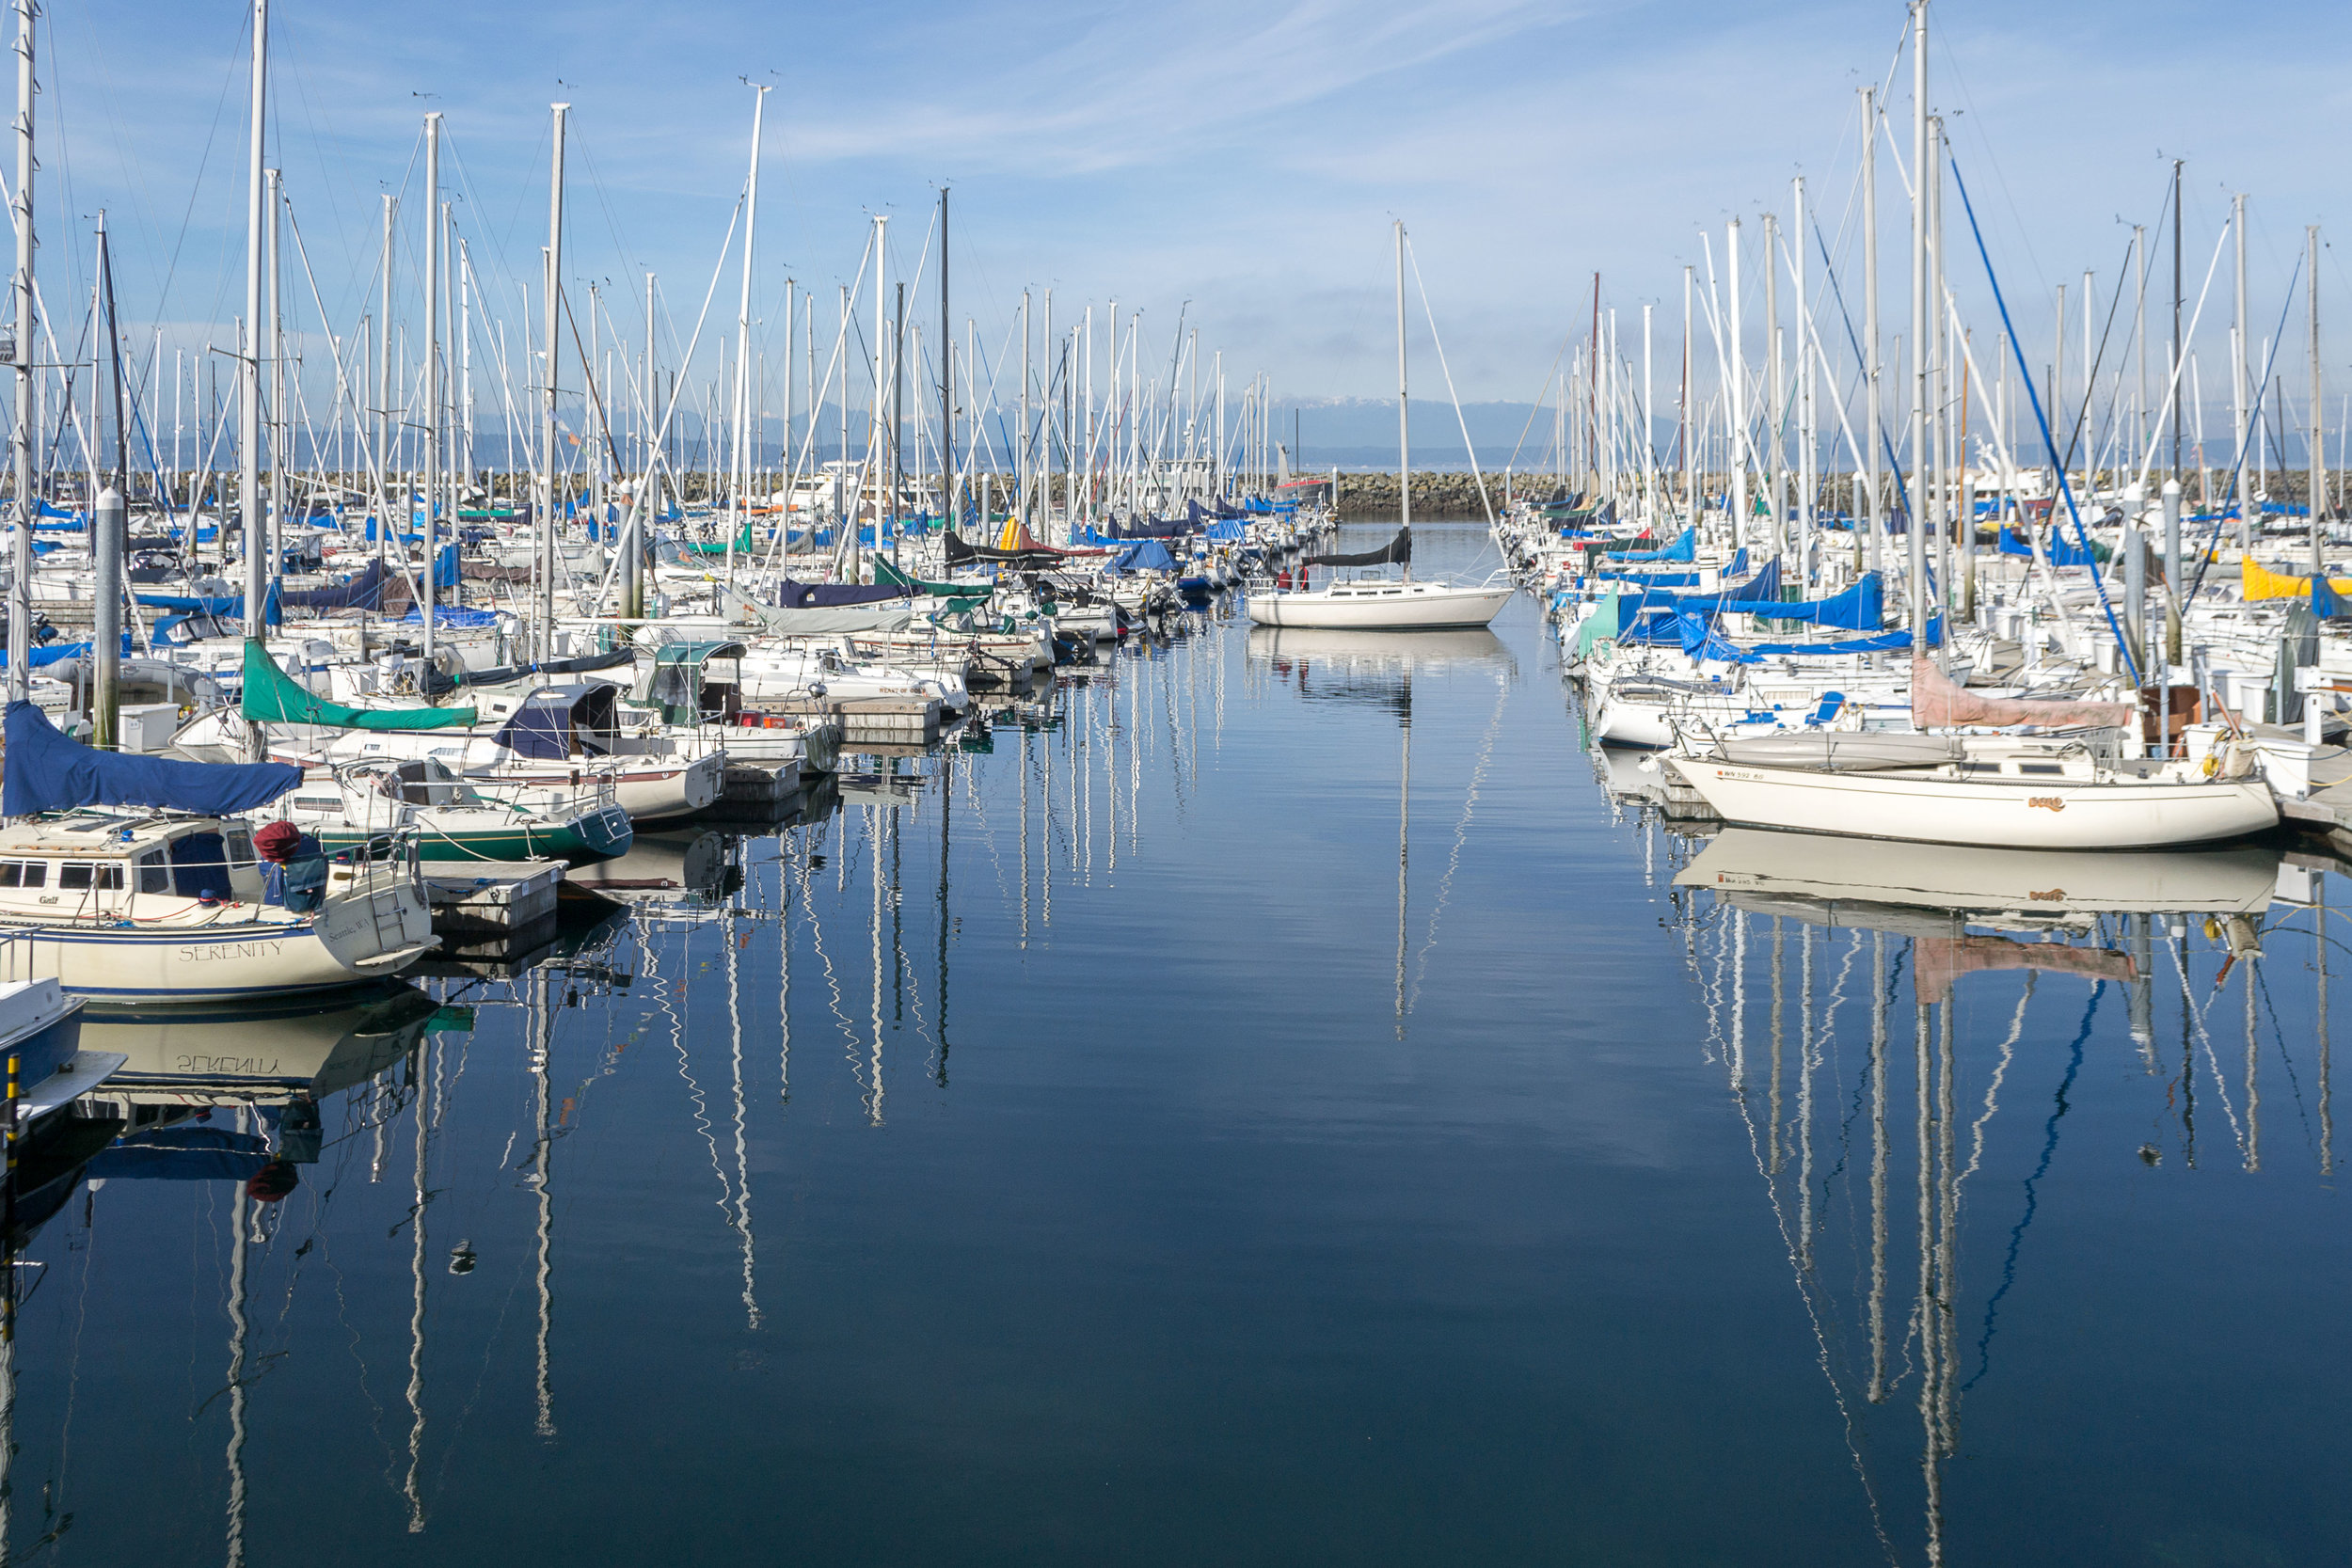 From whale watching to harbor cruises and from the Victoria Clipper to gala celebration cruises, the Puget Sound area has hundreds of private recreational vessels using the waterways.